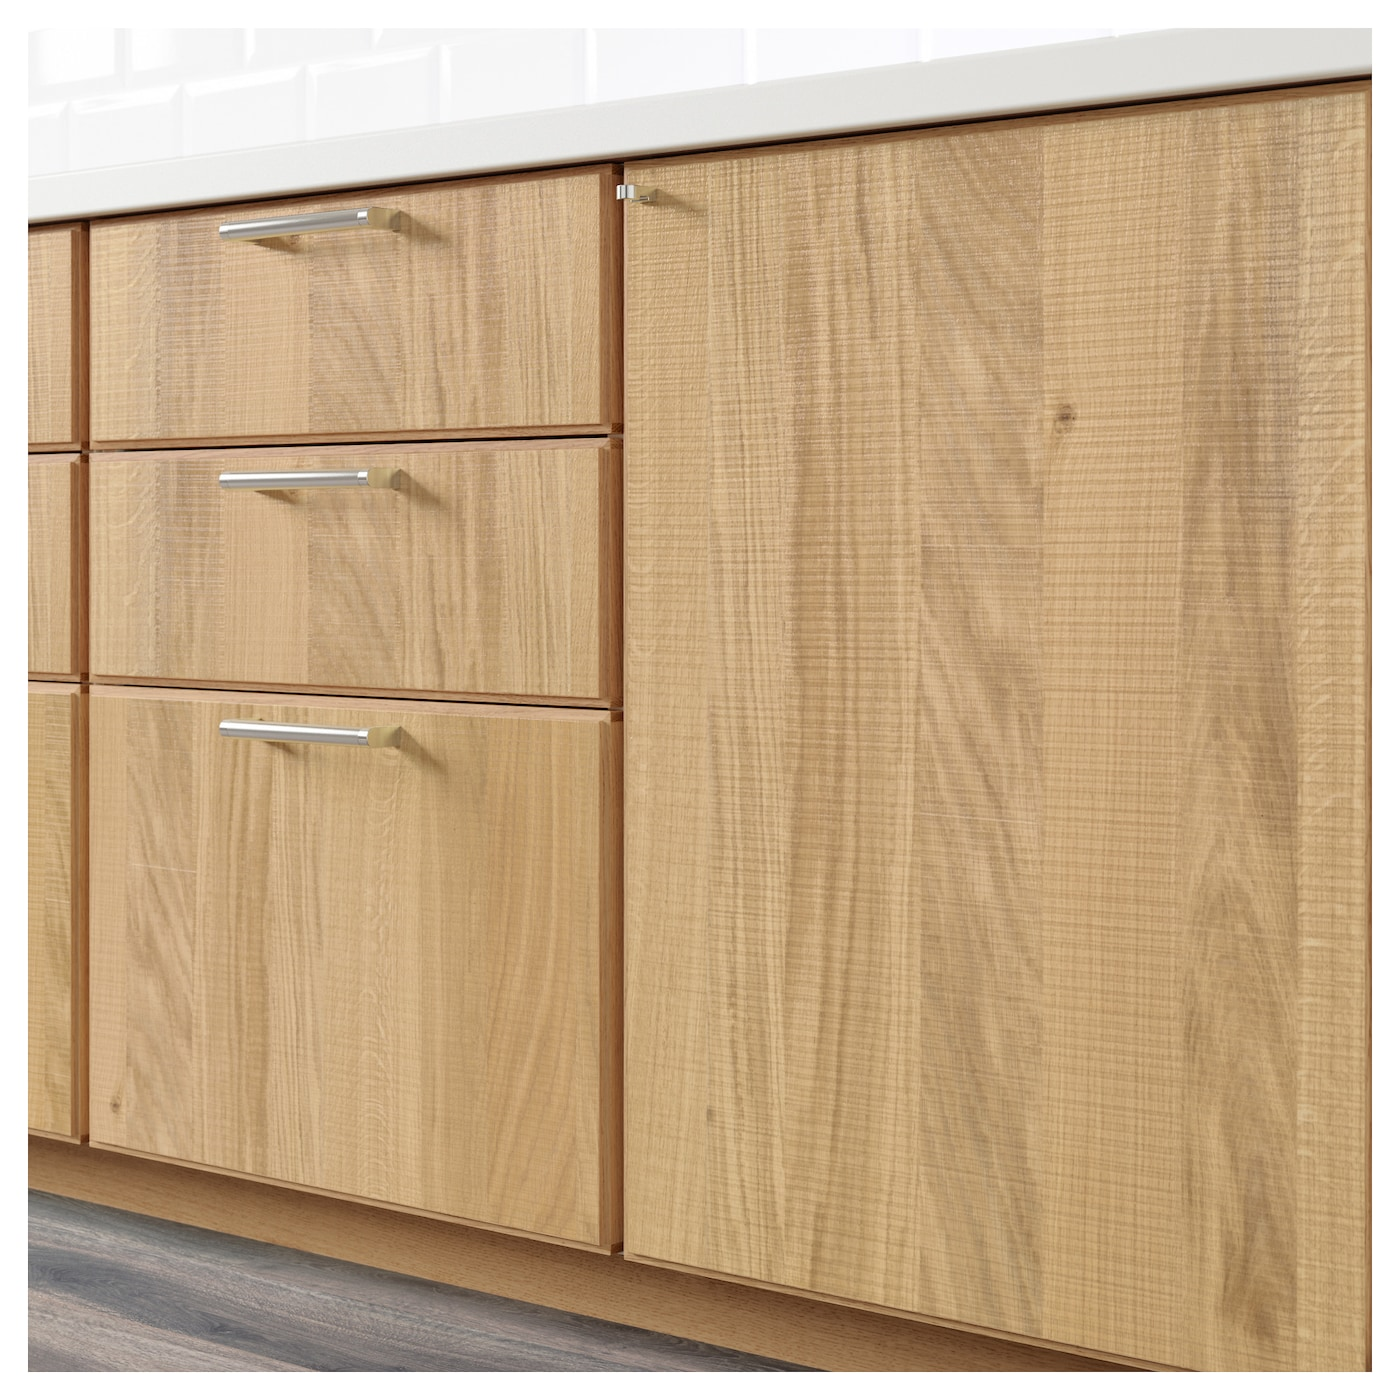 Hyttan door oak veneer 60x80 cm ikea for Plaque bois cuisine